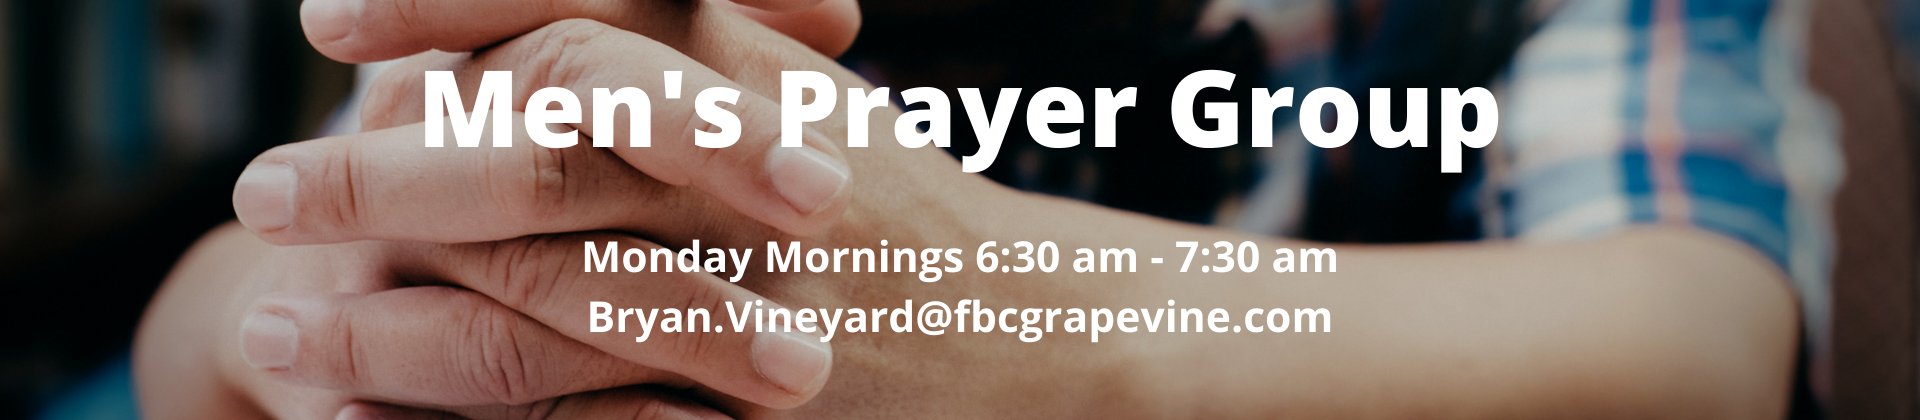 Men's Prayer Group2